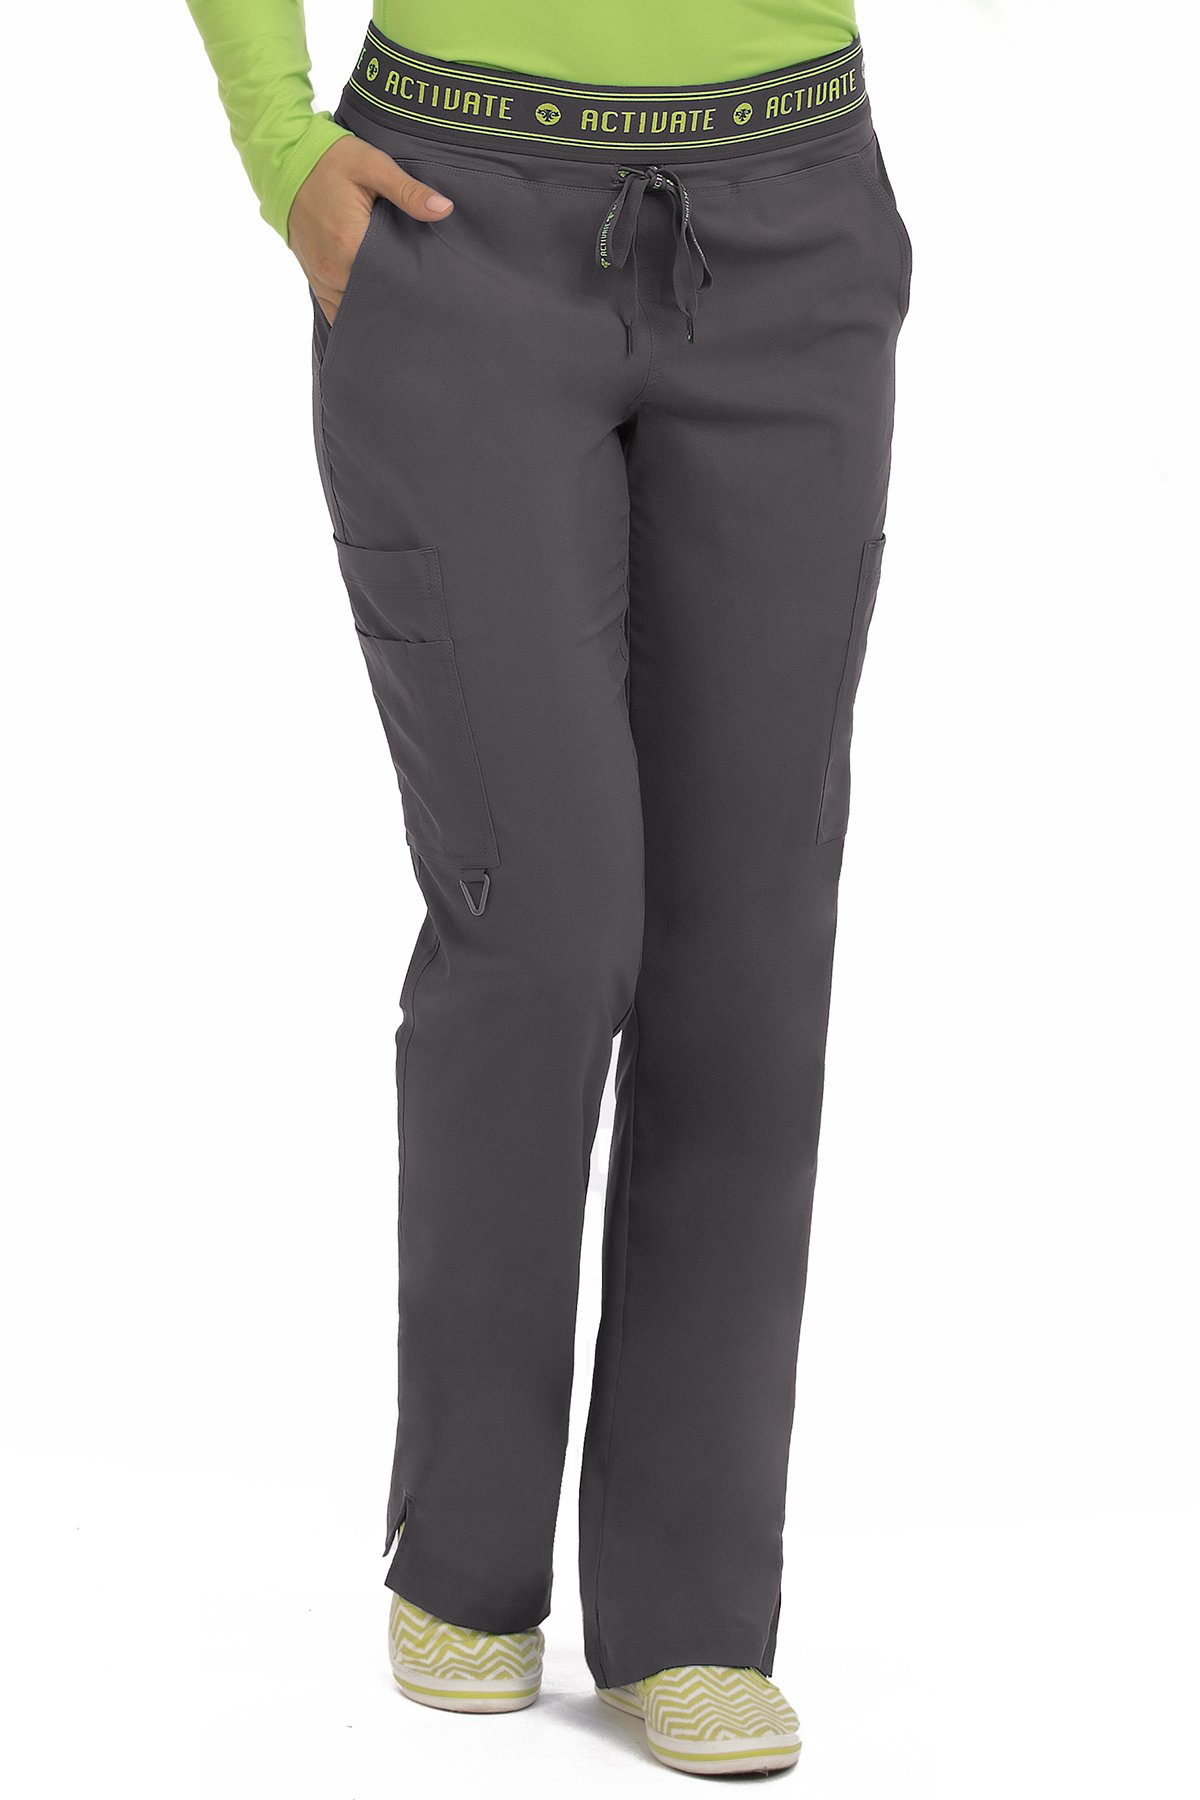 Med Couture Women's 'Activate' Flow Yoga Cargo Scrub Pant, Pewter, Small